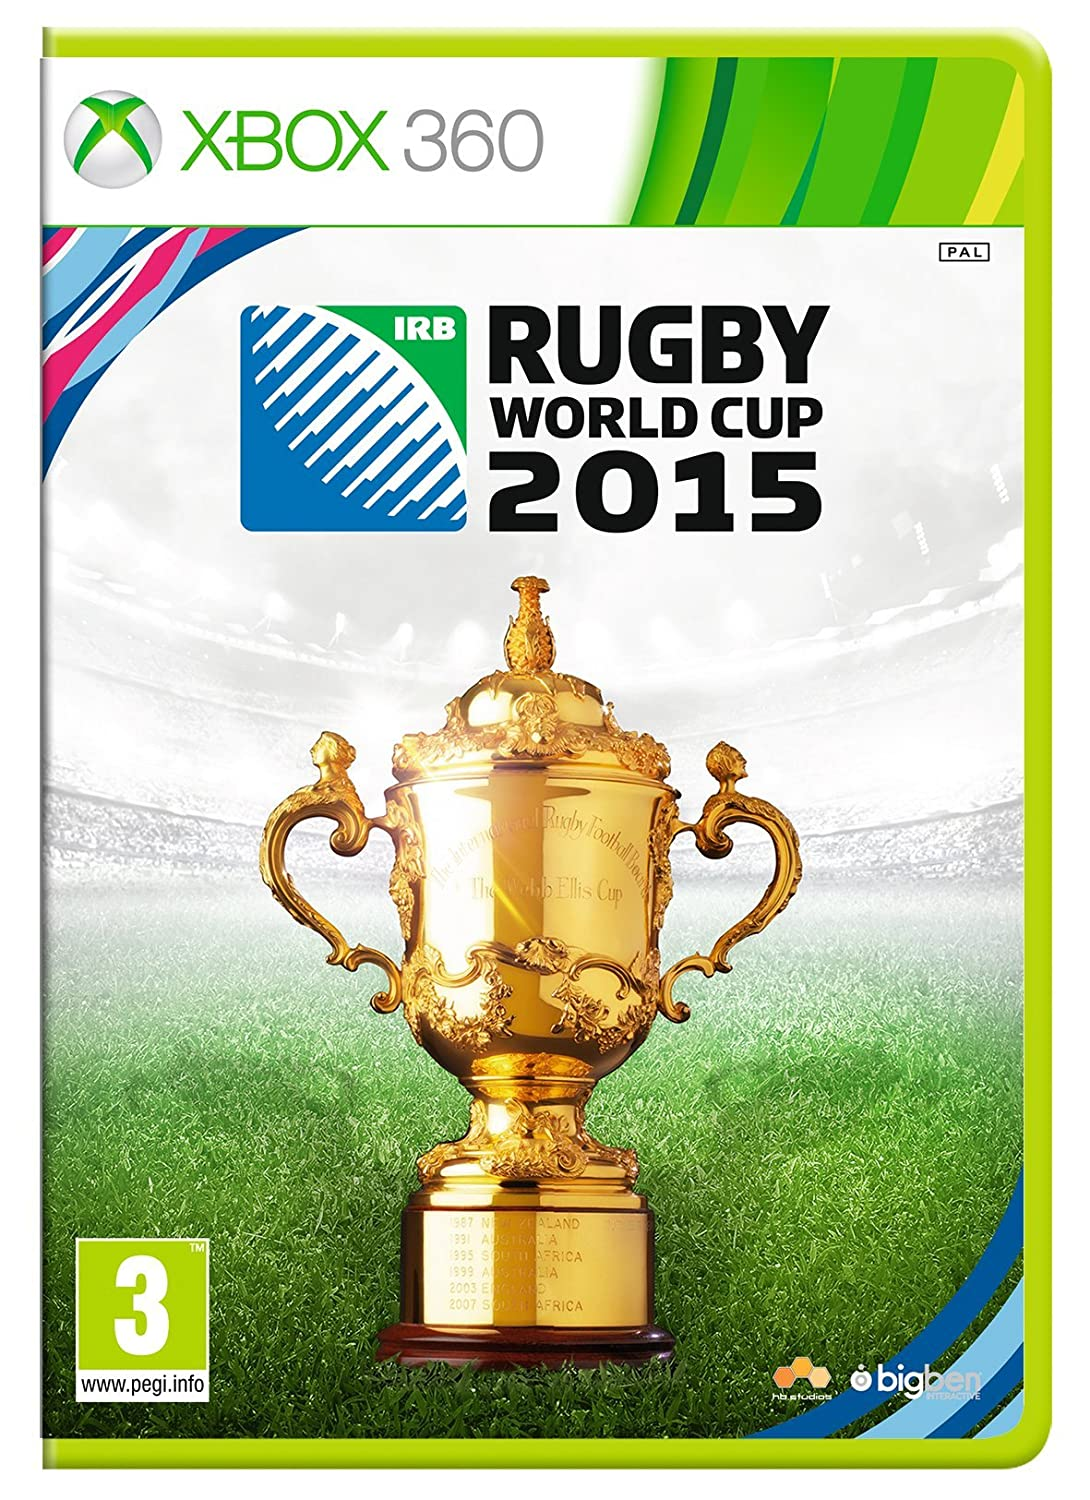 Rugby World Cup Manufacturer direct delivery Xbox 2015 sold out 360